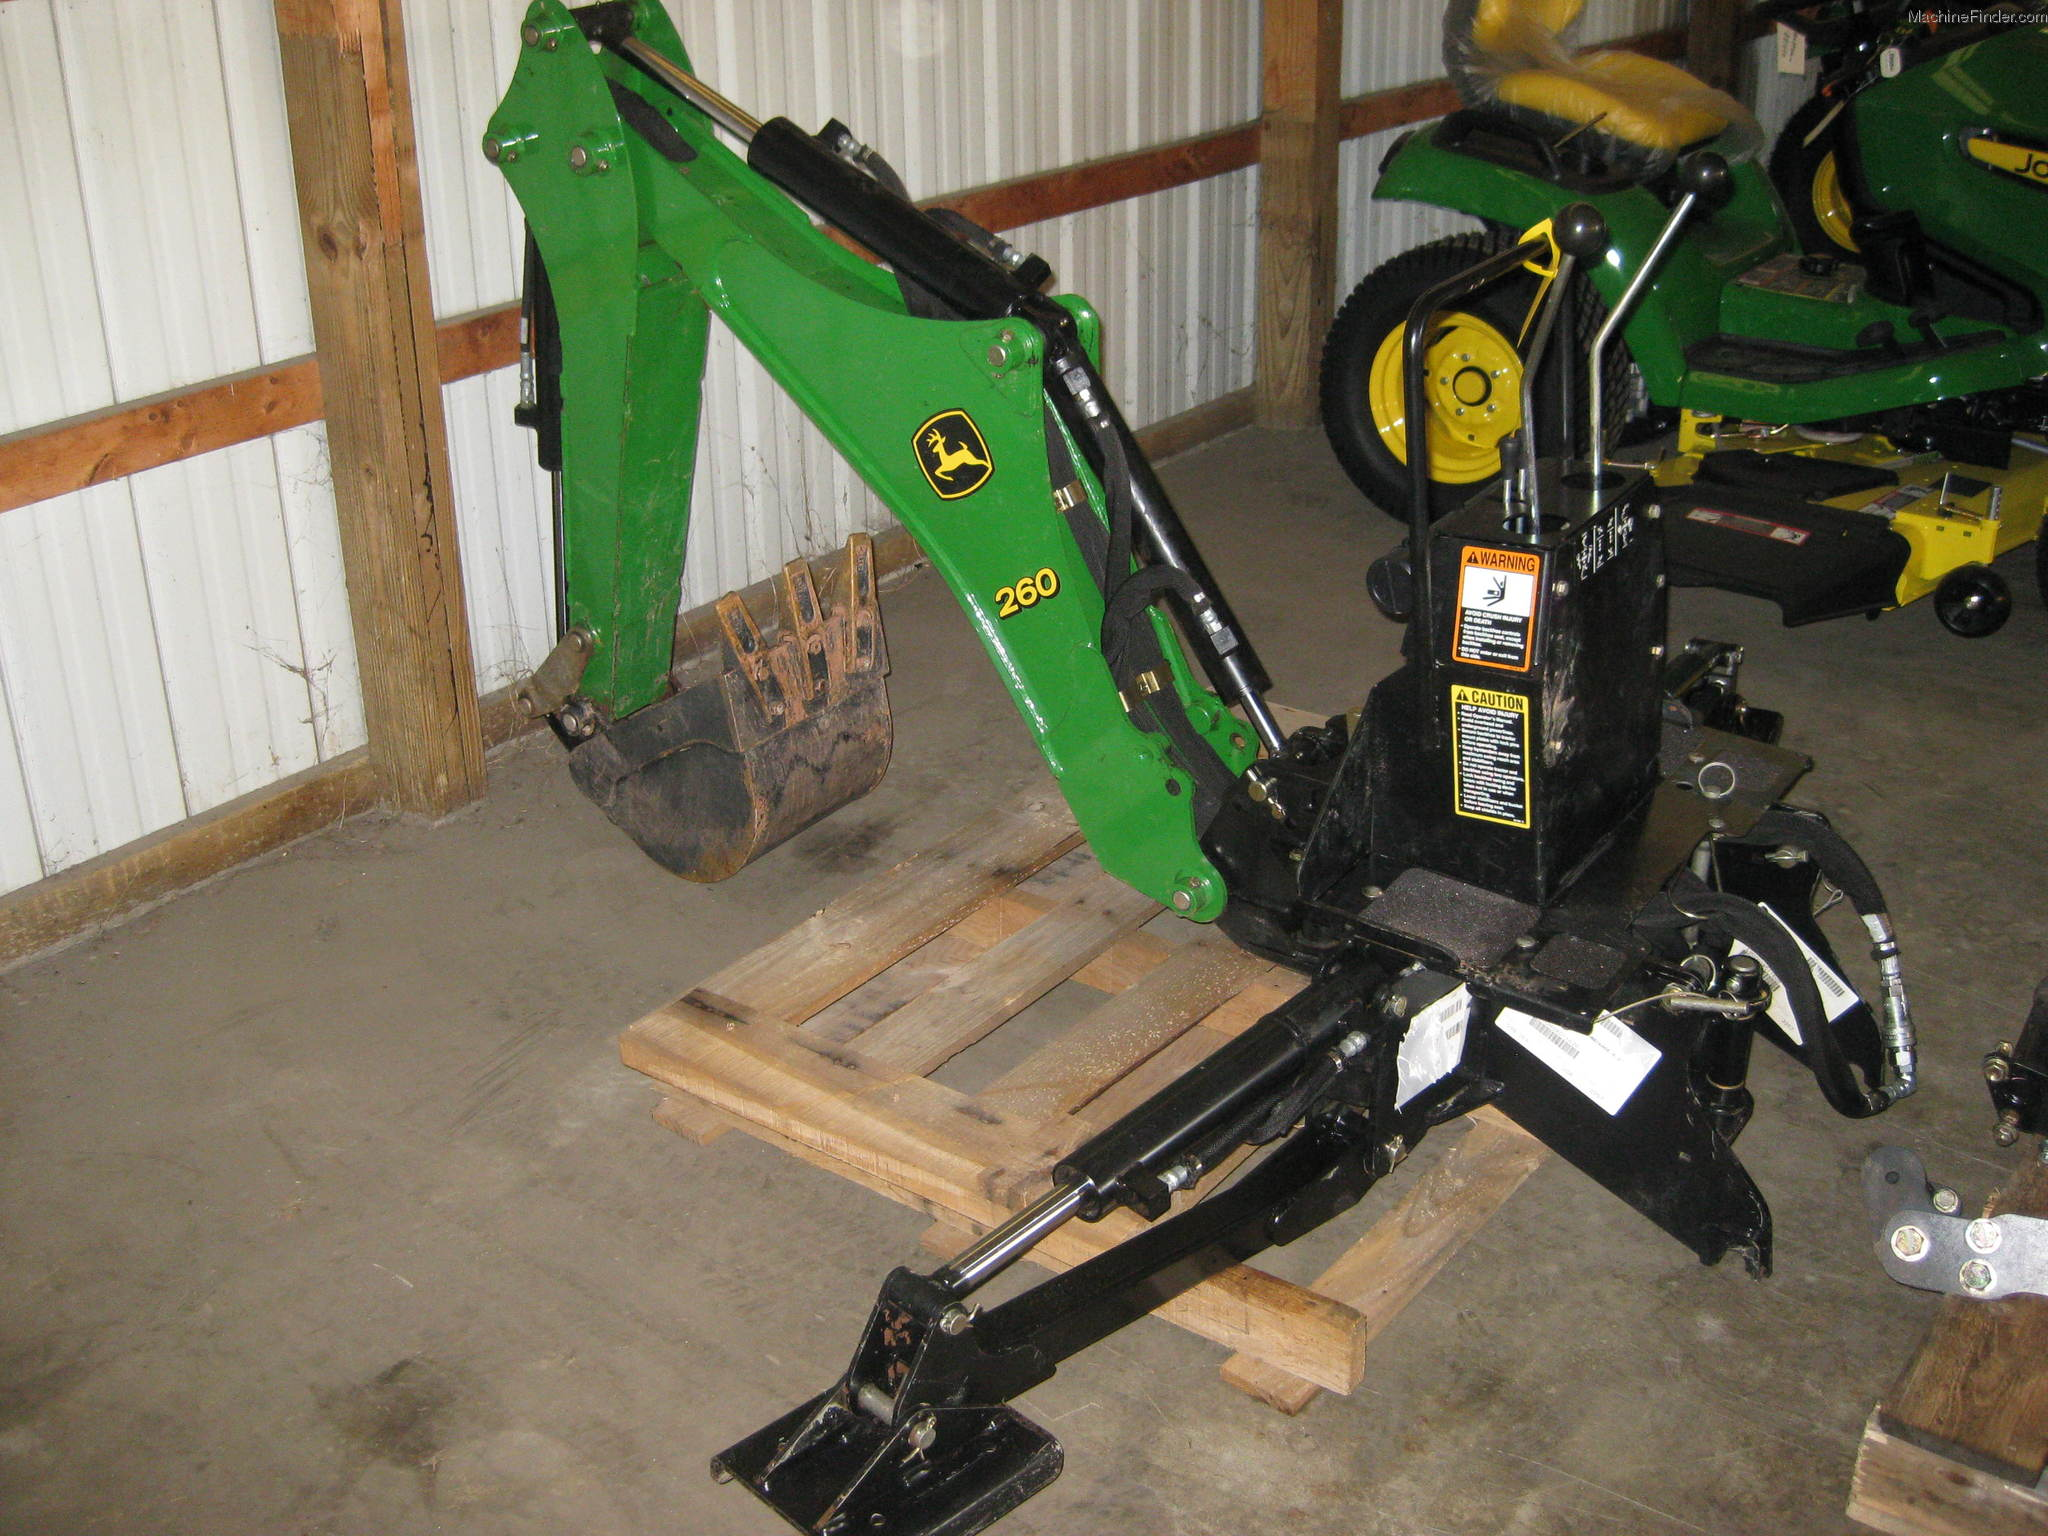 2008 John Deere 260 Attachments - John Deere MachineFinder